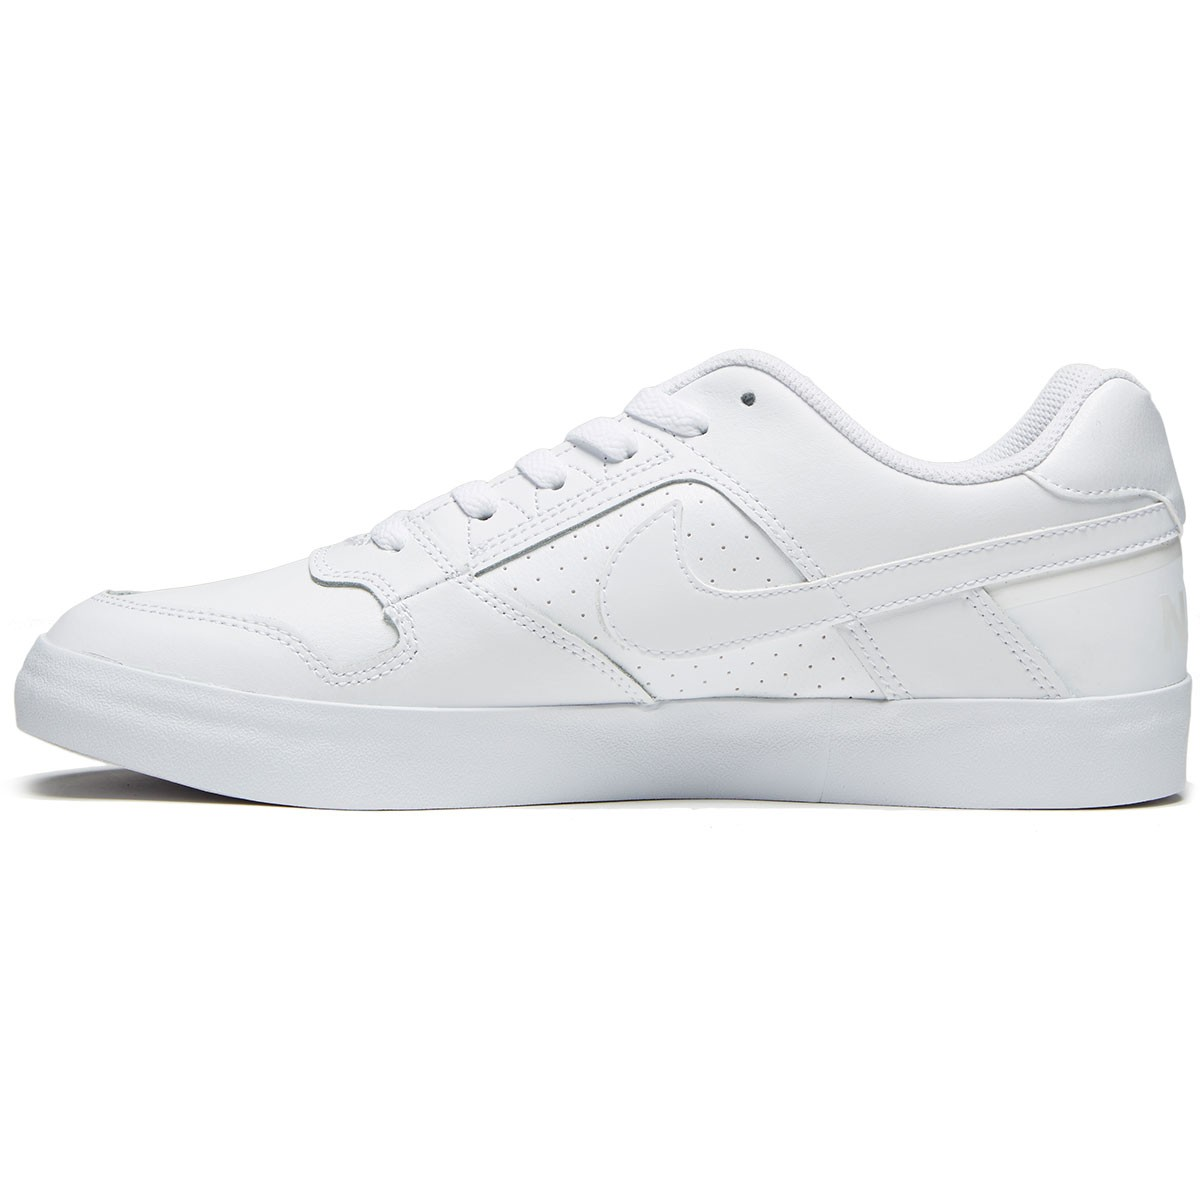 f08109d74344 Nike SB Delta Force Vulc Shoes - White White White - 8.0